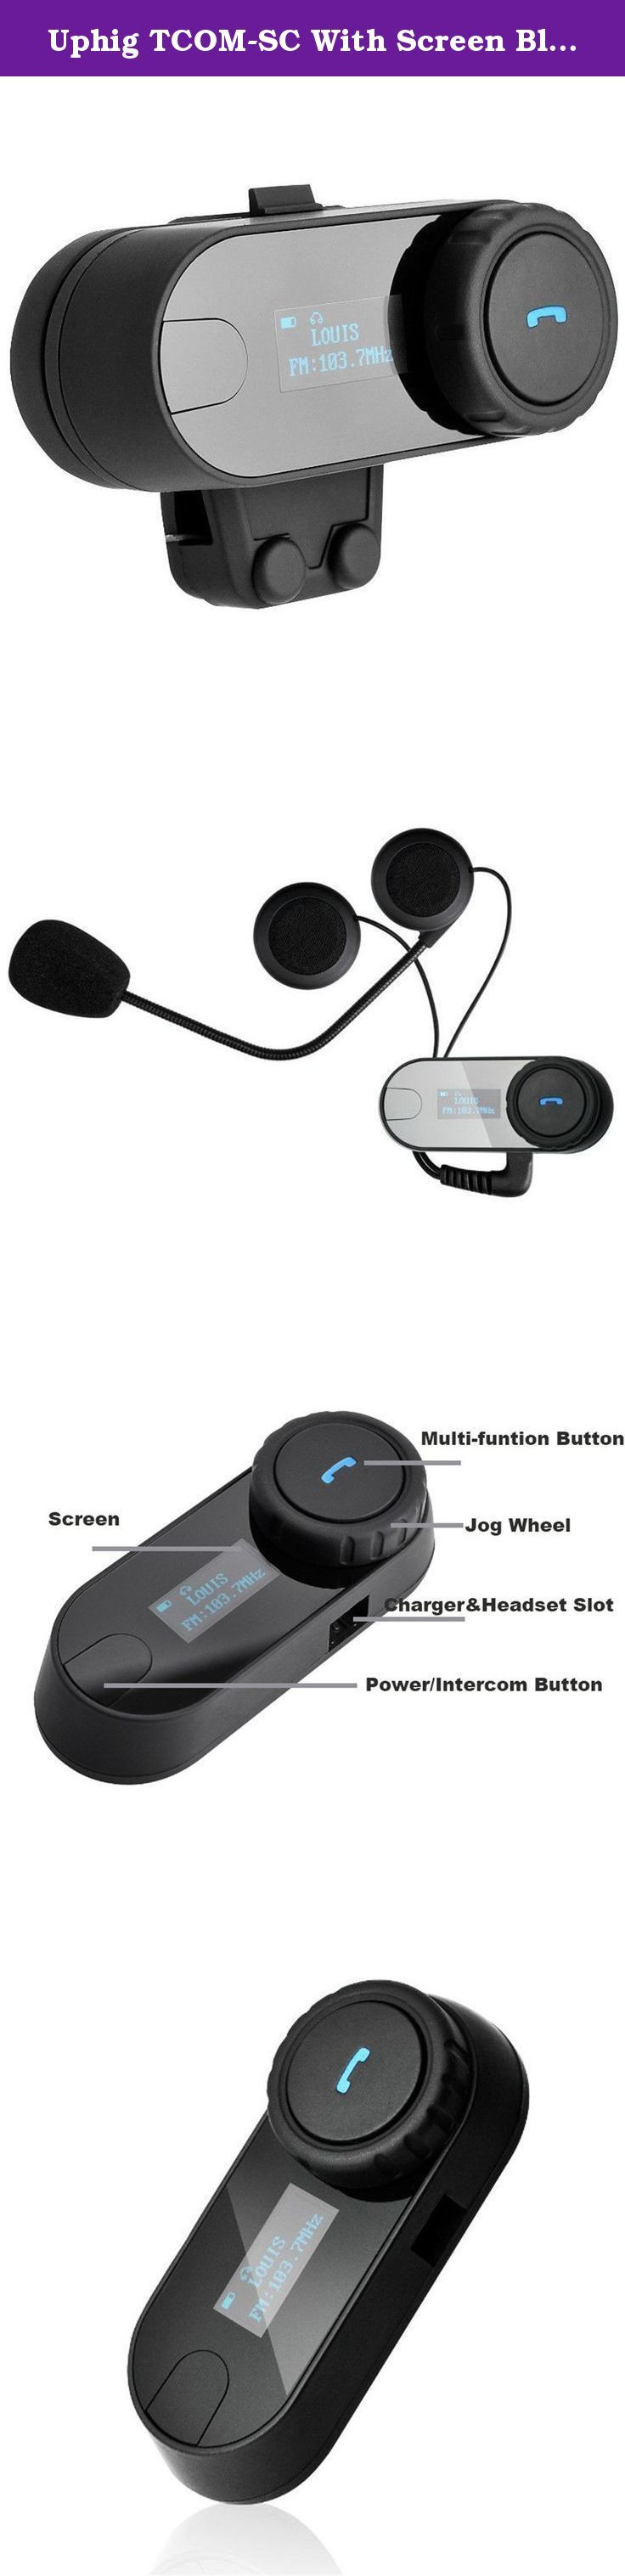 Uphig TCOM-SC With Screen Bluetooth Motorcycle Motorbike Helmet 800M Intercom Headset (US STOCK). Main features (1) Wireless headset for bluetooth enable cell phone at a range of up to 10 meters. Bike-to-bike intercom for rider& passenger or two separate bikes up to 1000 meters. Up to 10 hours talk time when connected to cell phone. Up to 6 hours talk time when using the intercom feature. Up to 300 hours standby (2) Call out, call answer, call reject, call hang up. (3) Receive a cell…